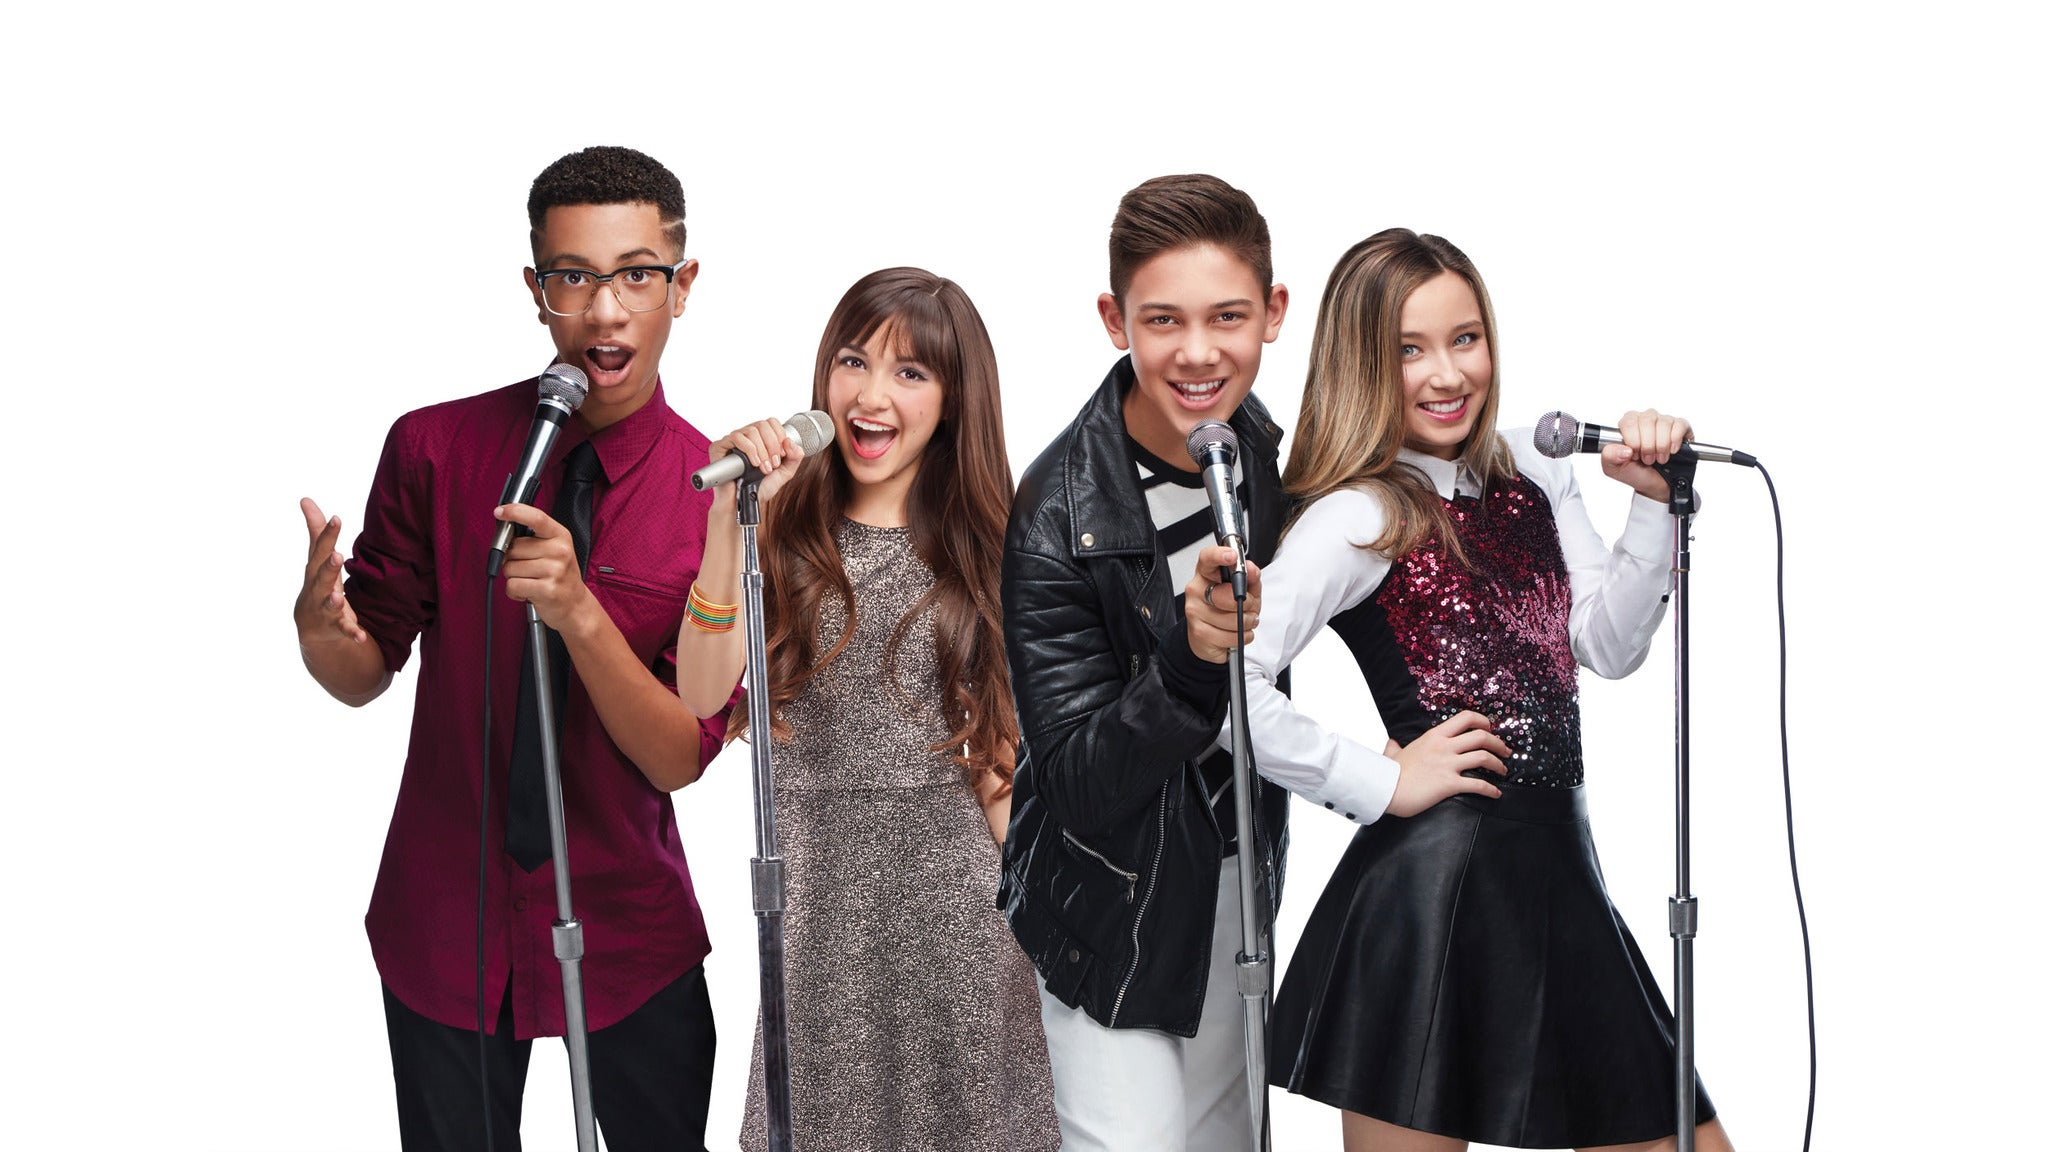 KIDZ BOP KIDS: LIFE OF THE PARTY TOUR at Palace of Fine Arts